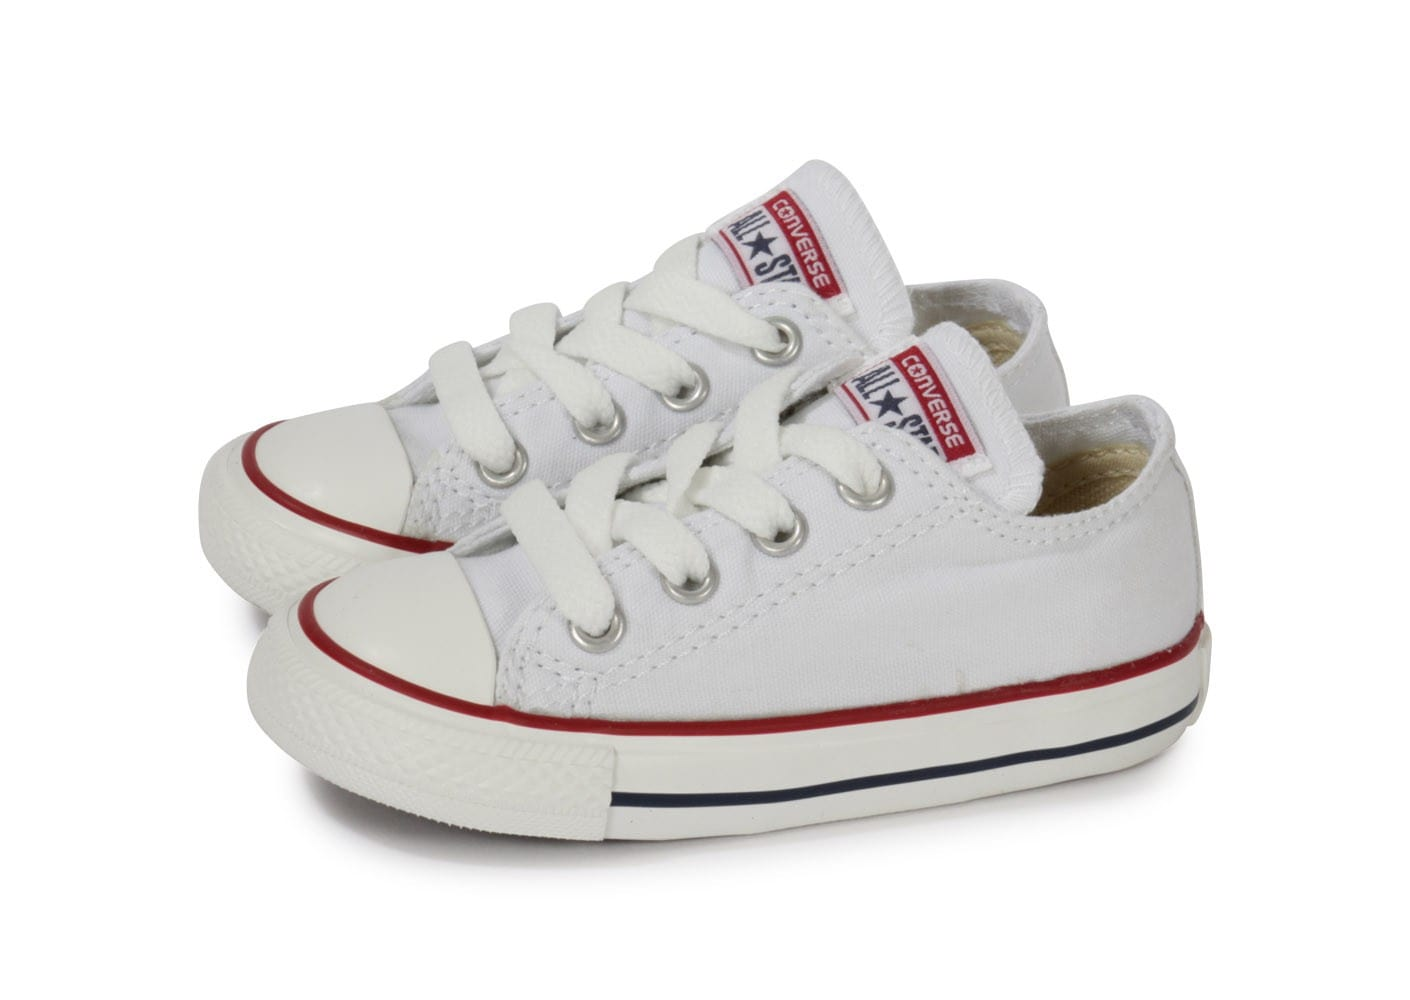 Chaussures Converse Blanche